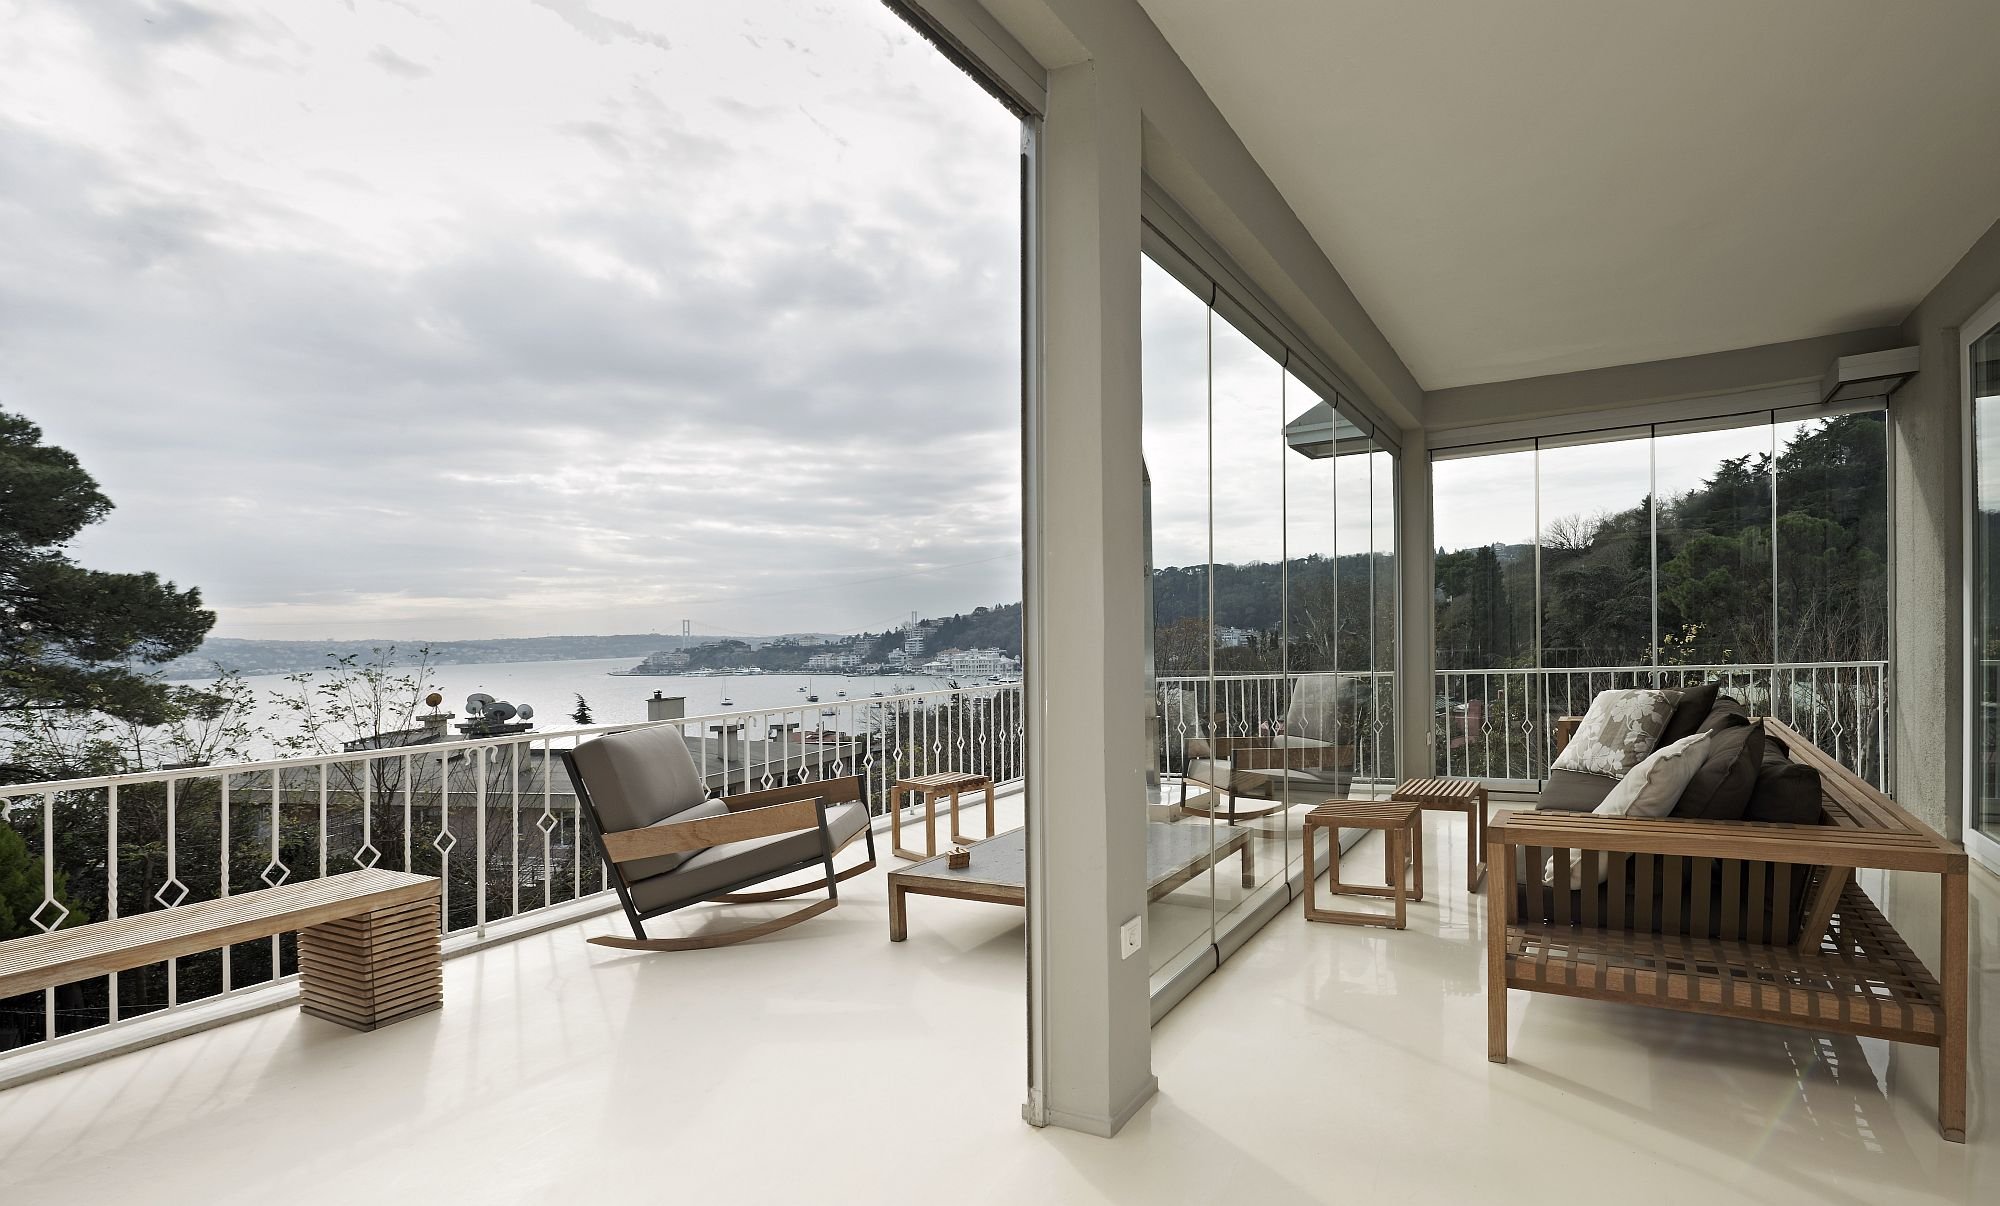 Open-deck-of-the-home-with-a-view-of-the-Bosphorus